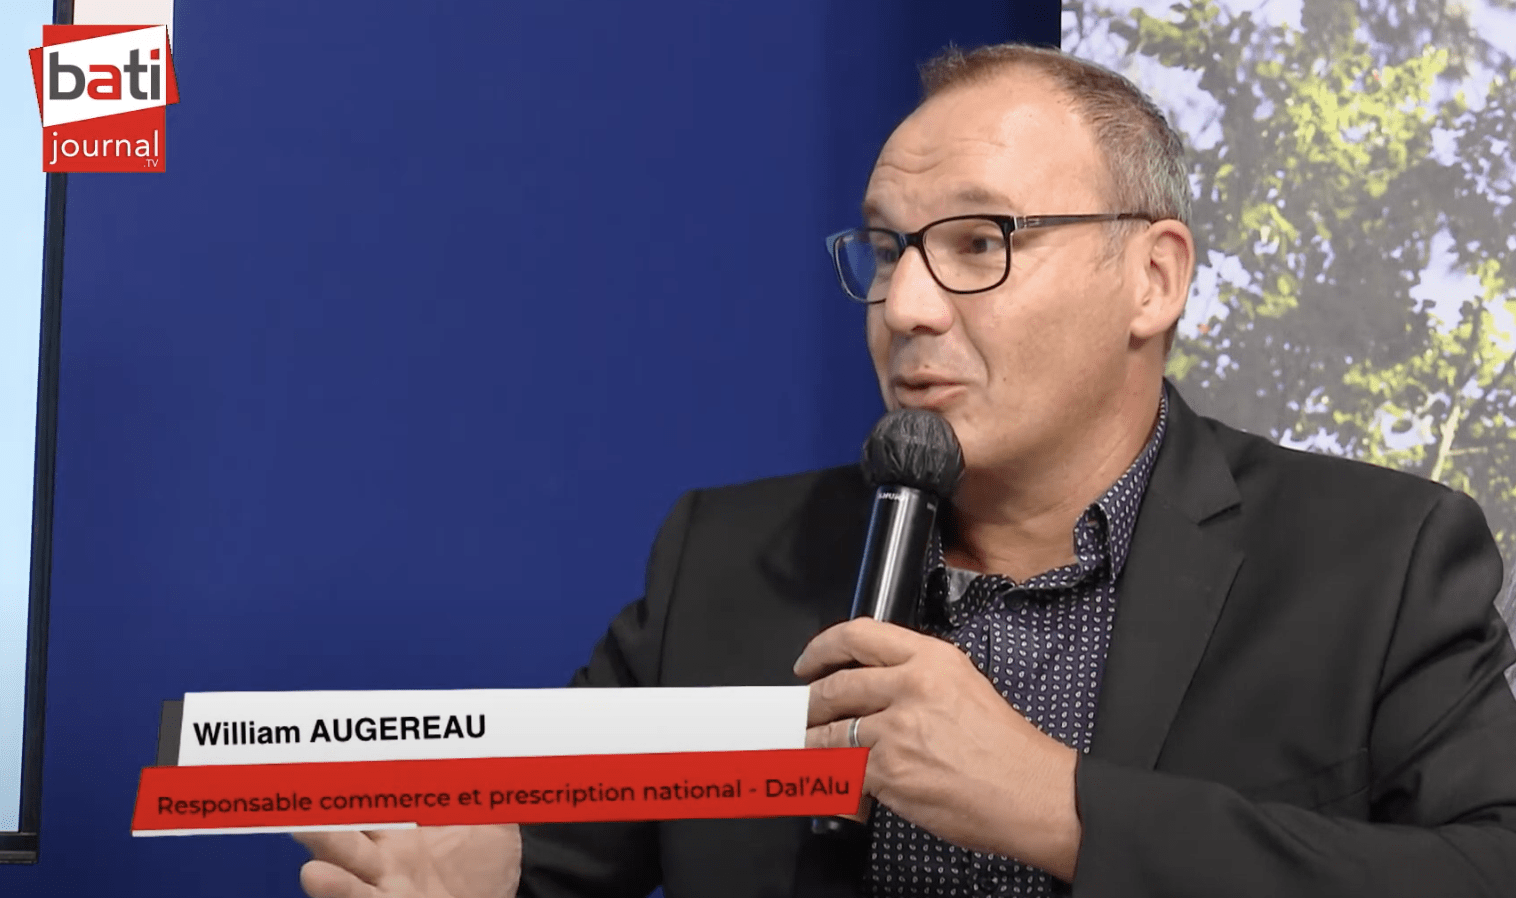 Entretien avec William Augereau, Responsable commerce et prescription national chez Dal'Alu